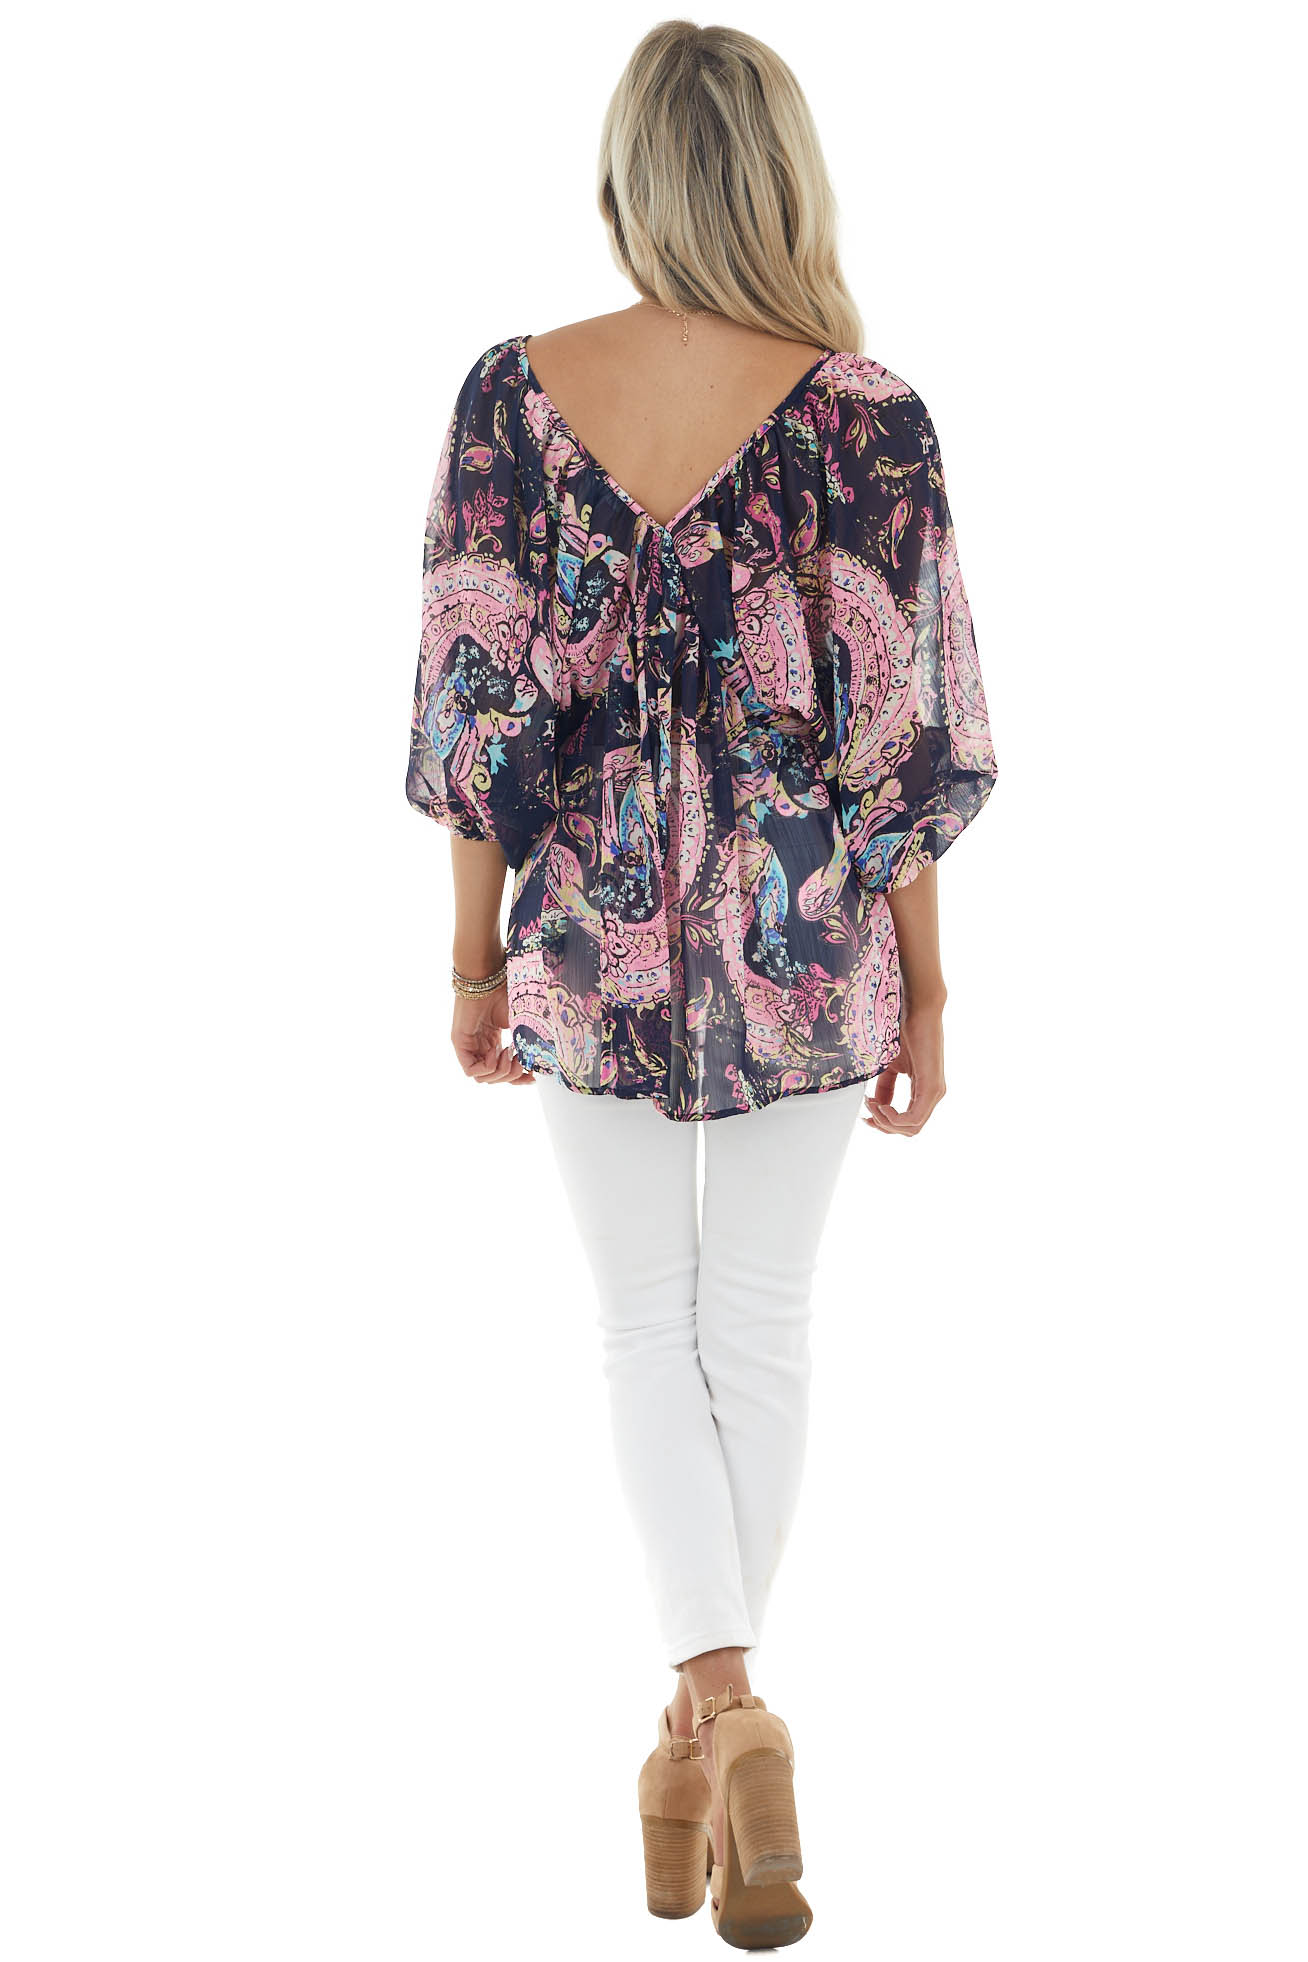 Navy Paisley Print 3/4 Sleeve Sheer Top with Plunging Neck